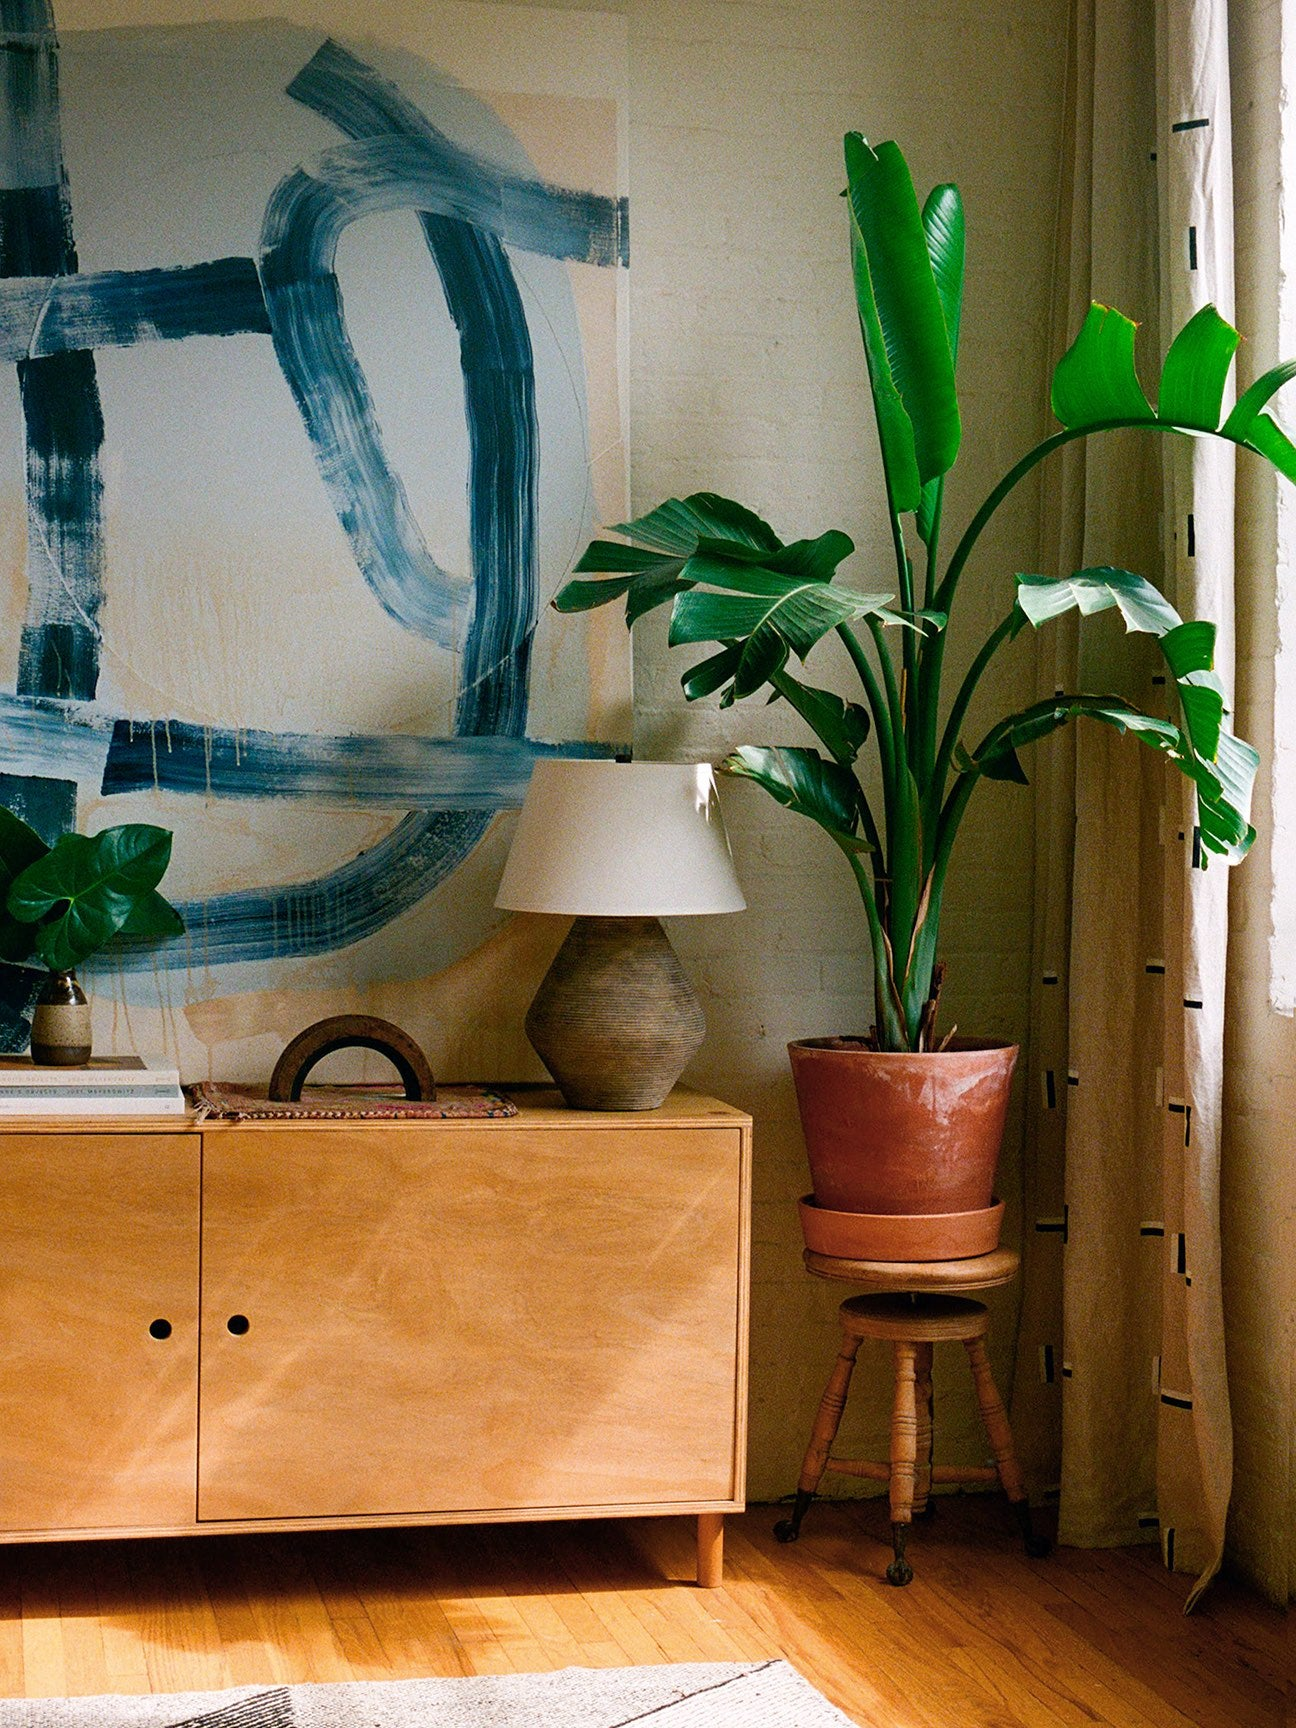 Corner of room with a plant